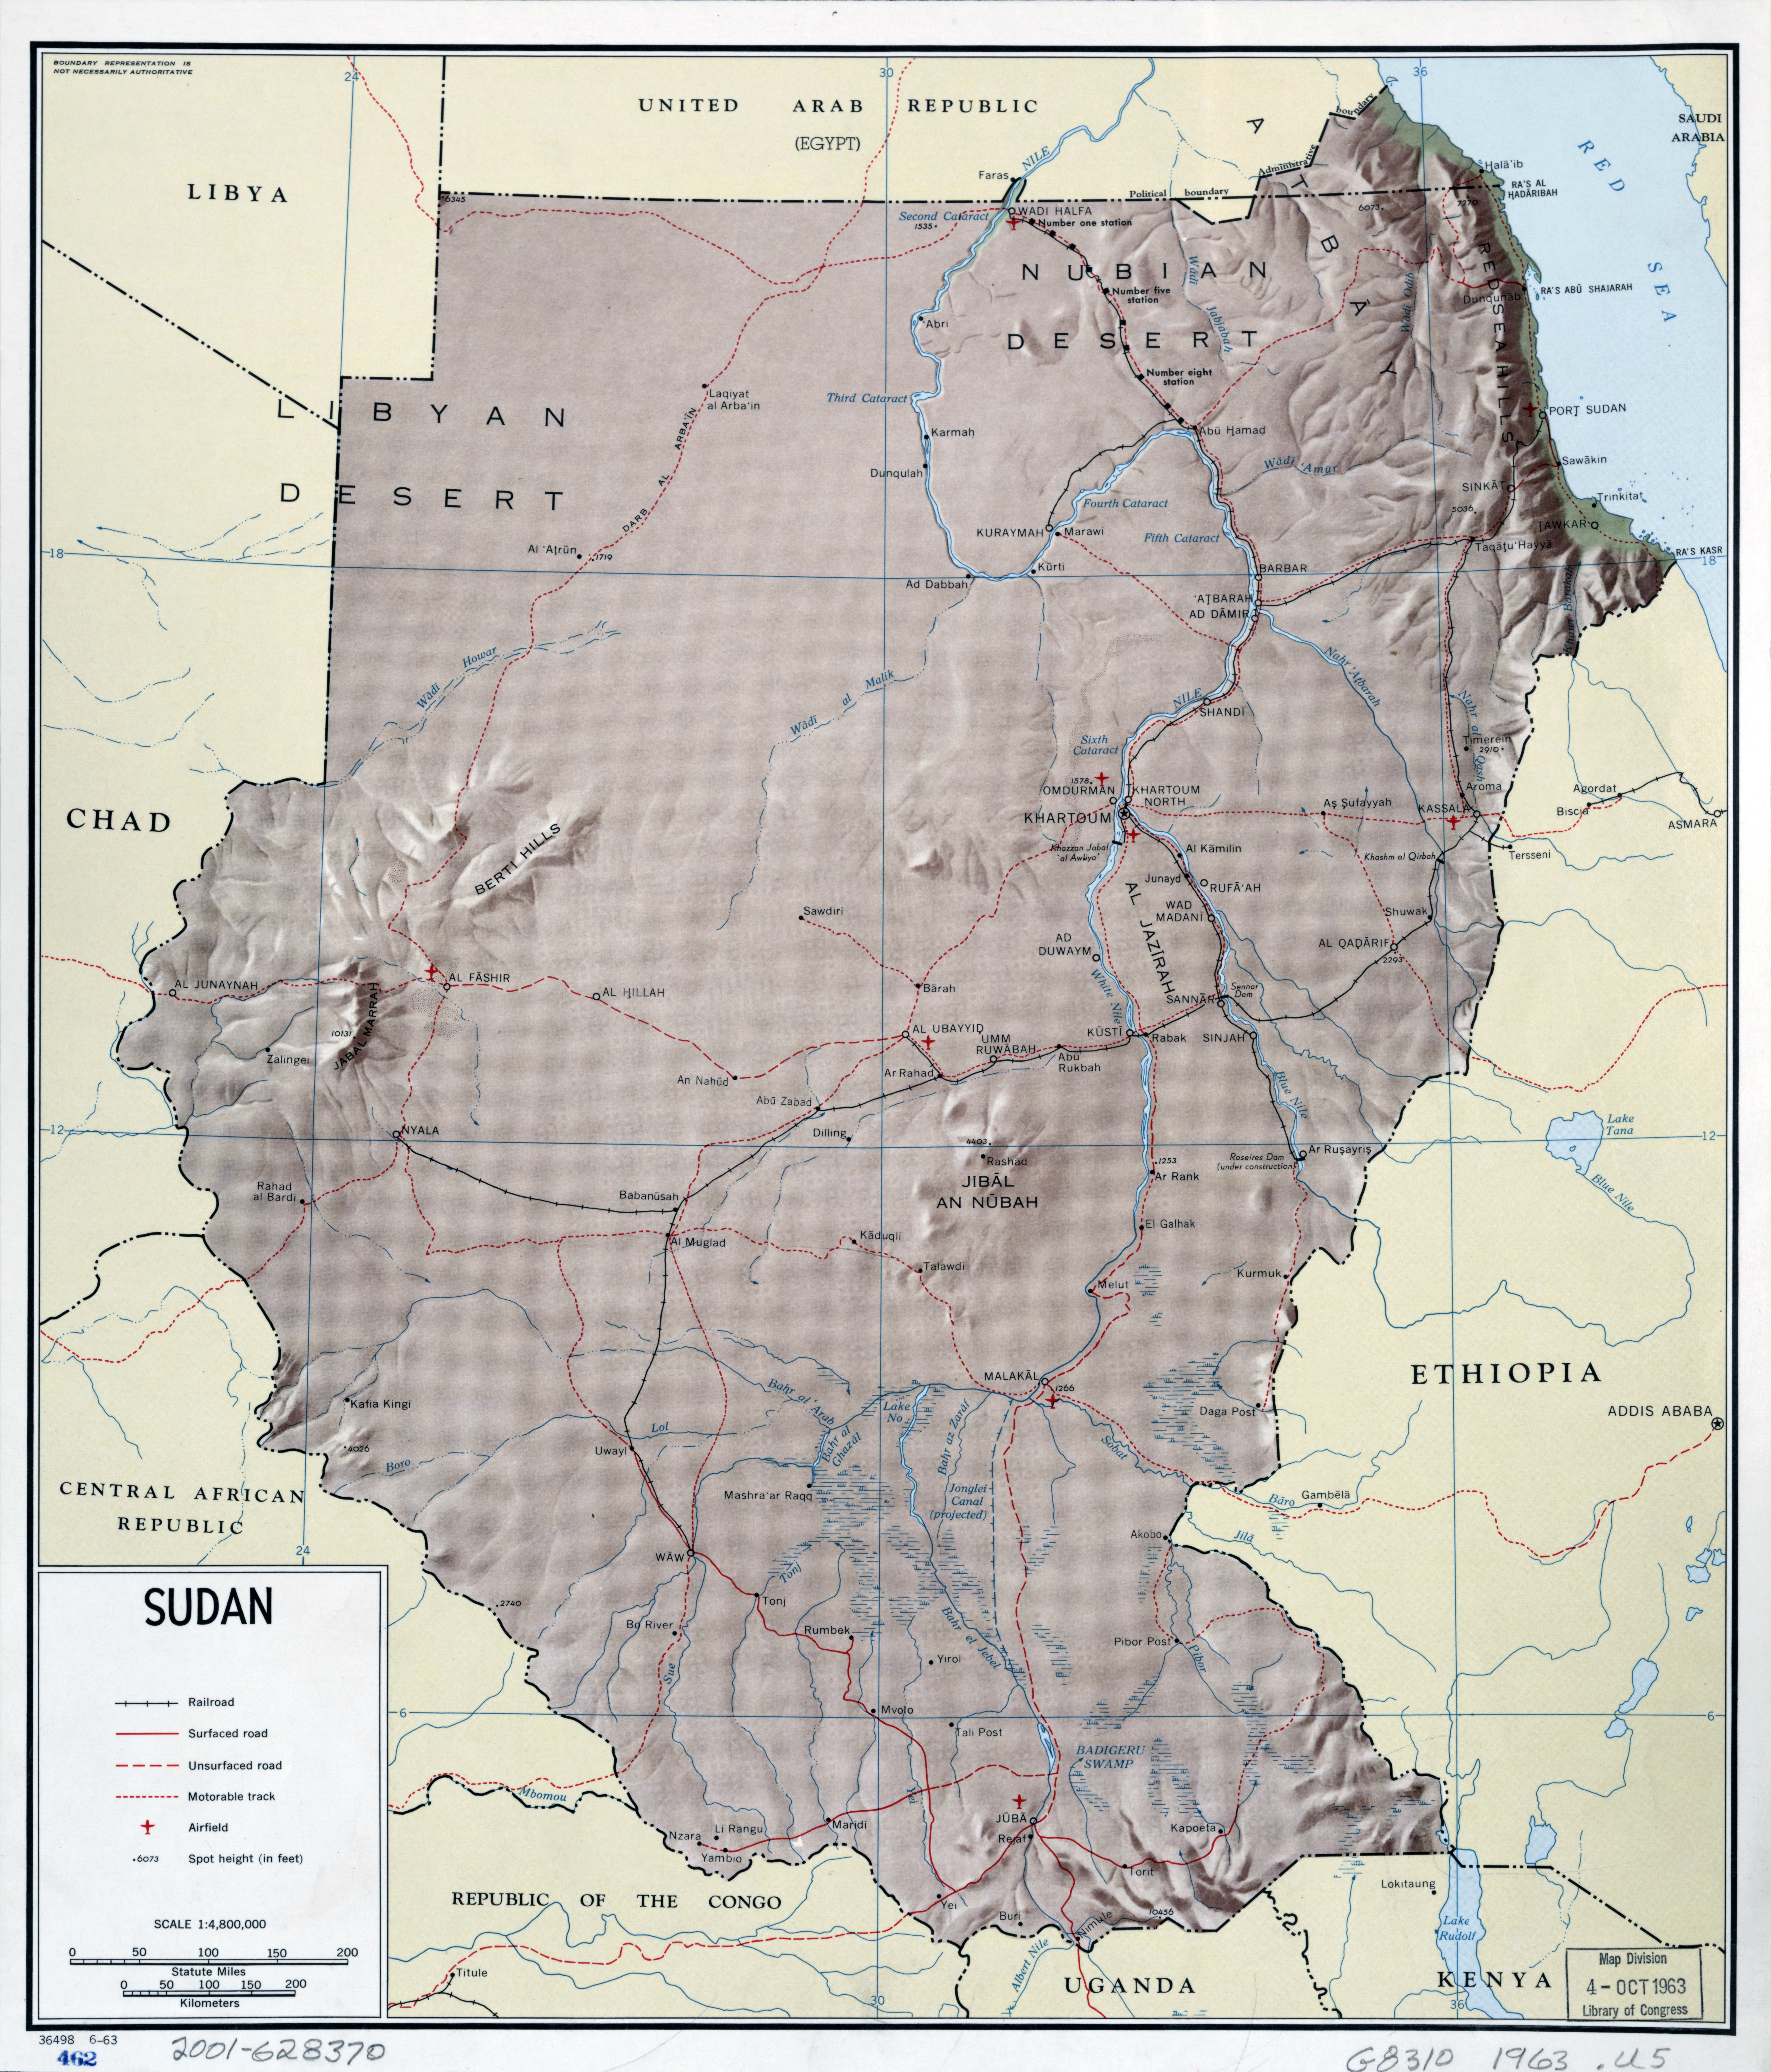 Large scale detailed political map of Sudan with relief roads